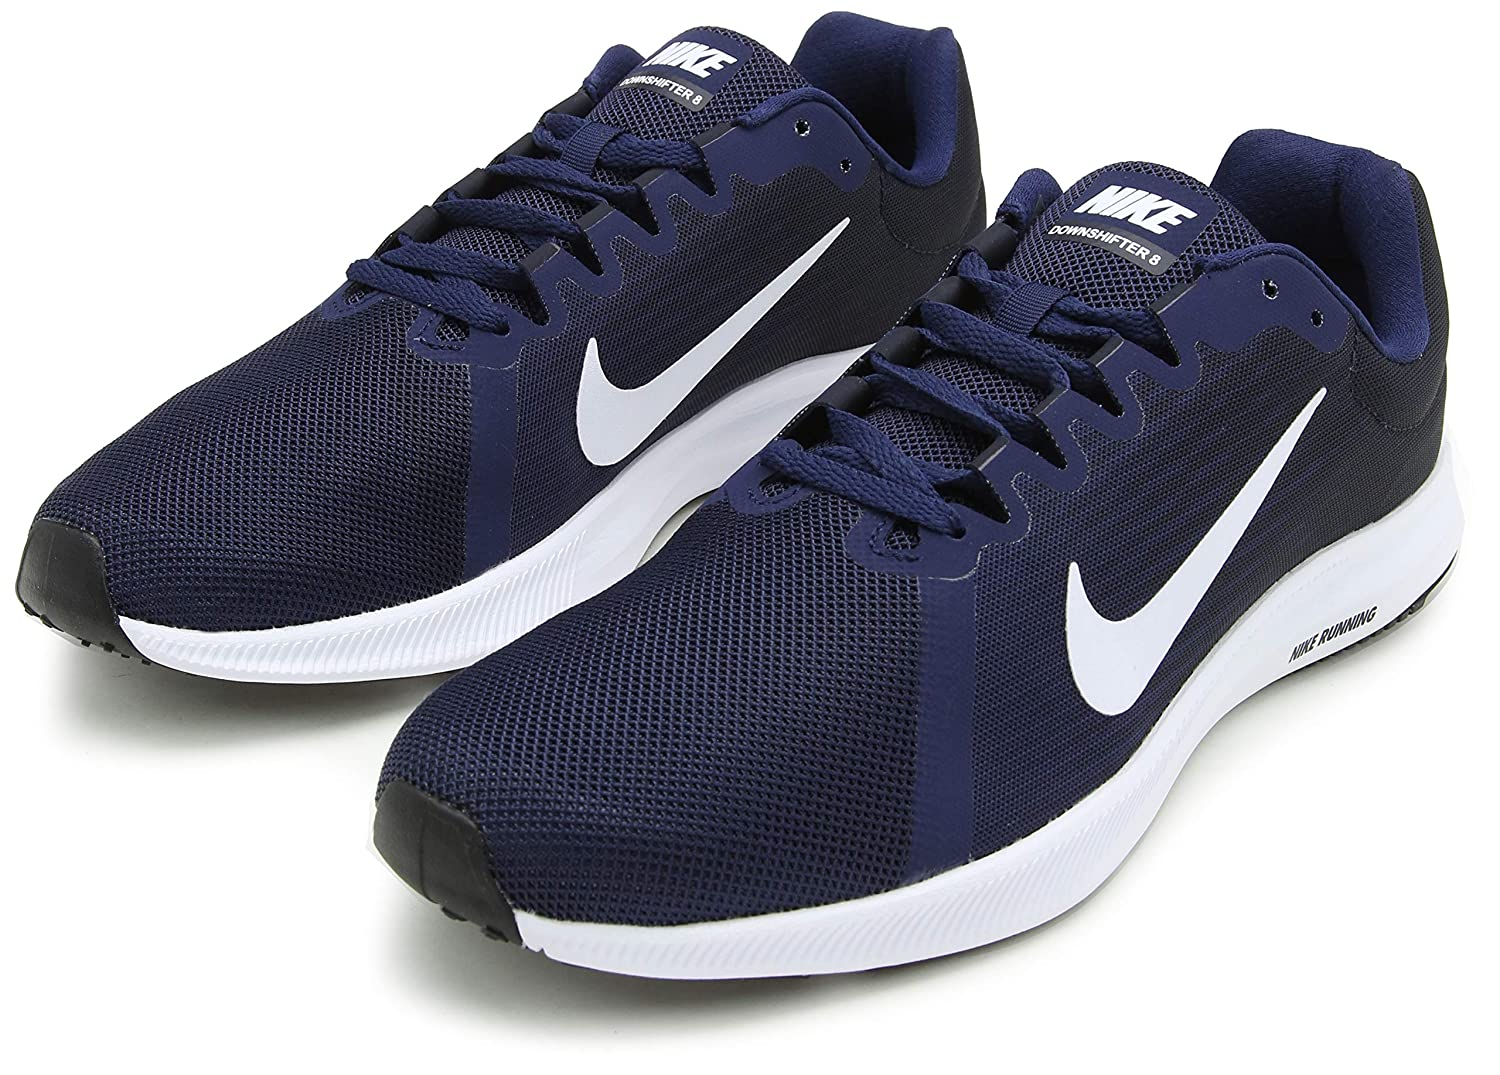 best sneakers 60b1c d5404 Nike Men s Downshifter 8 Navy Blue Running Shoes (908984-400)  Buy Online  at Low Prices in India - Amazon.in